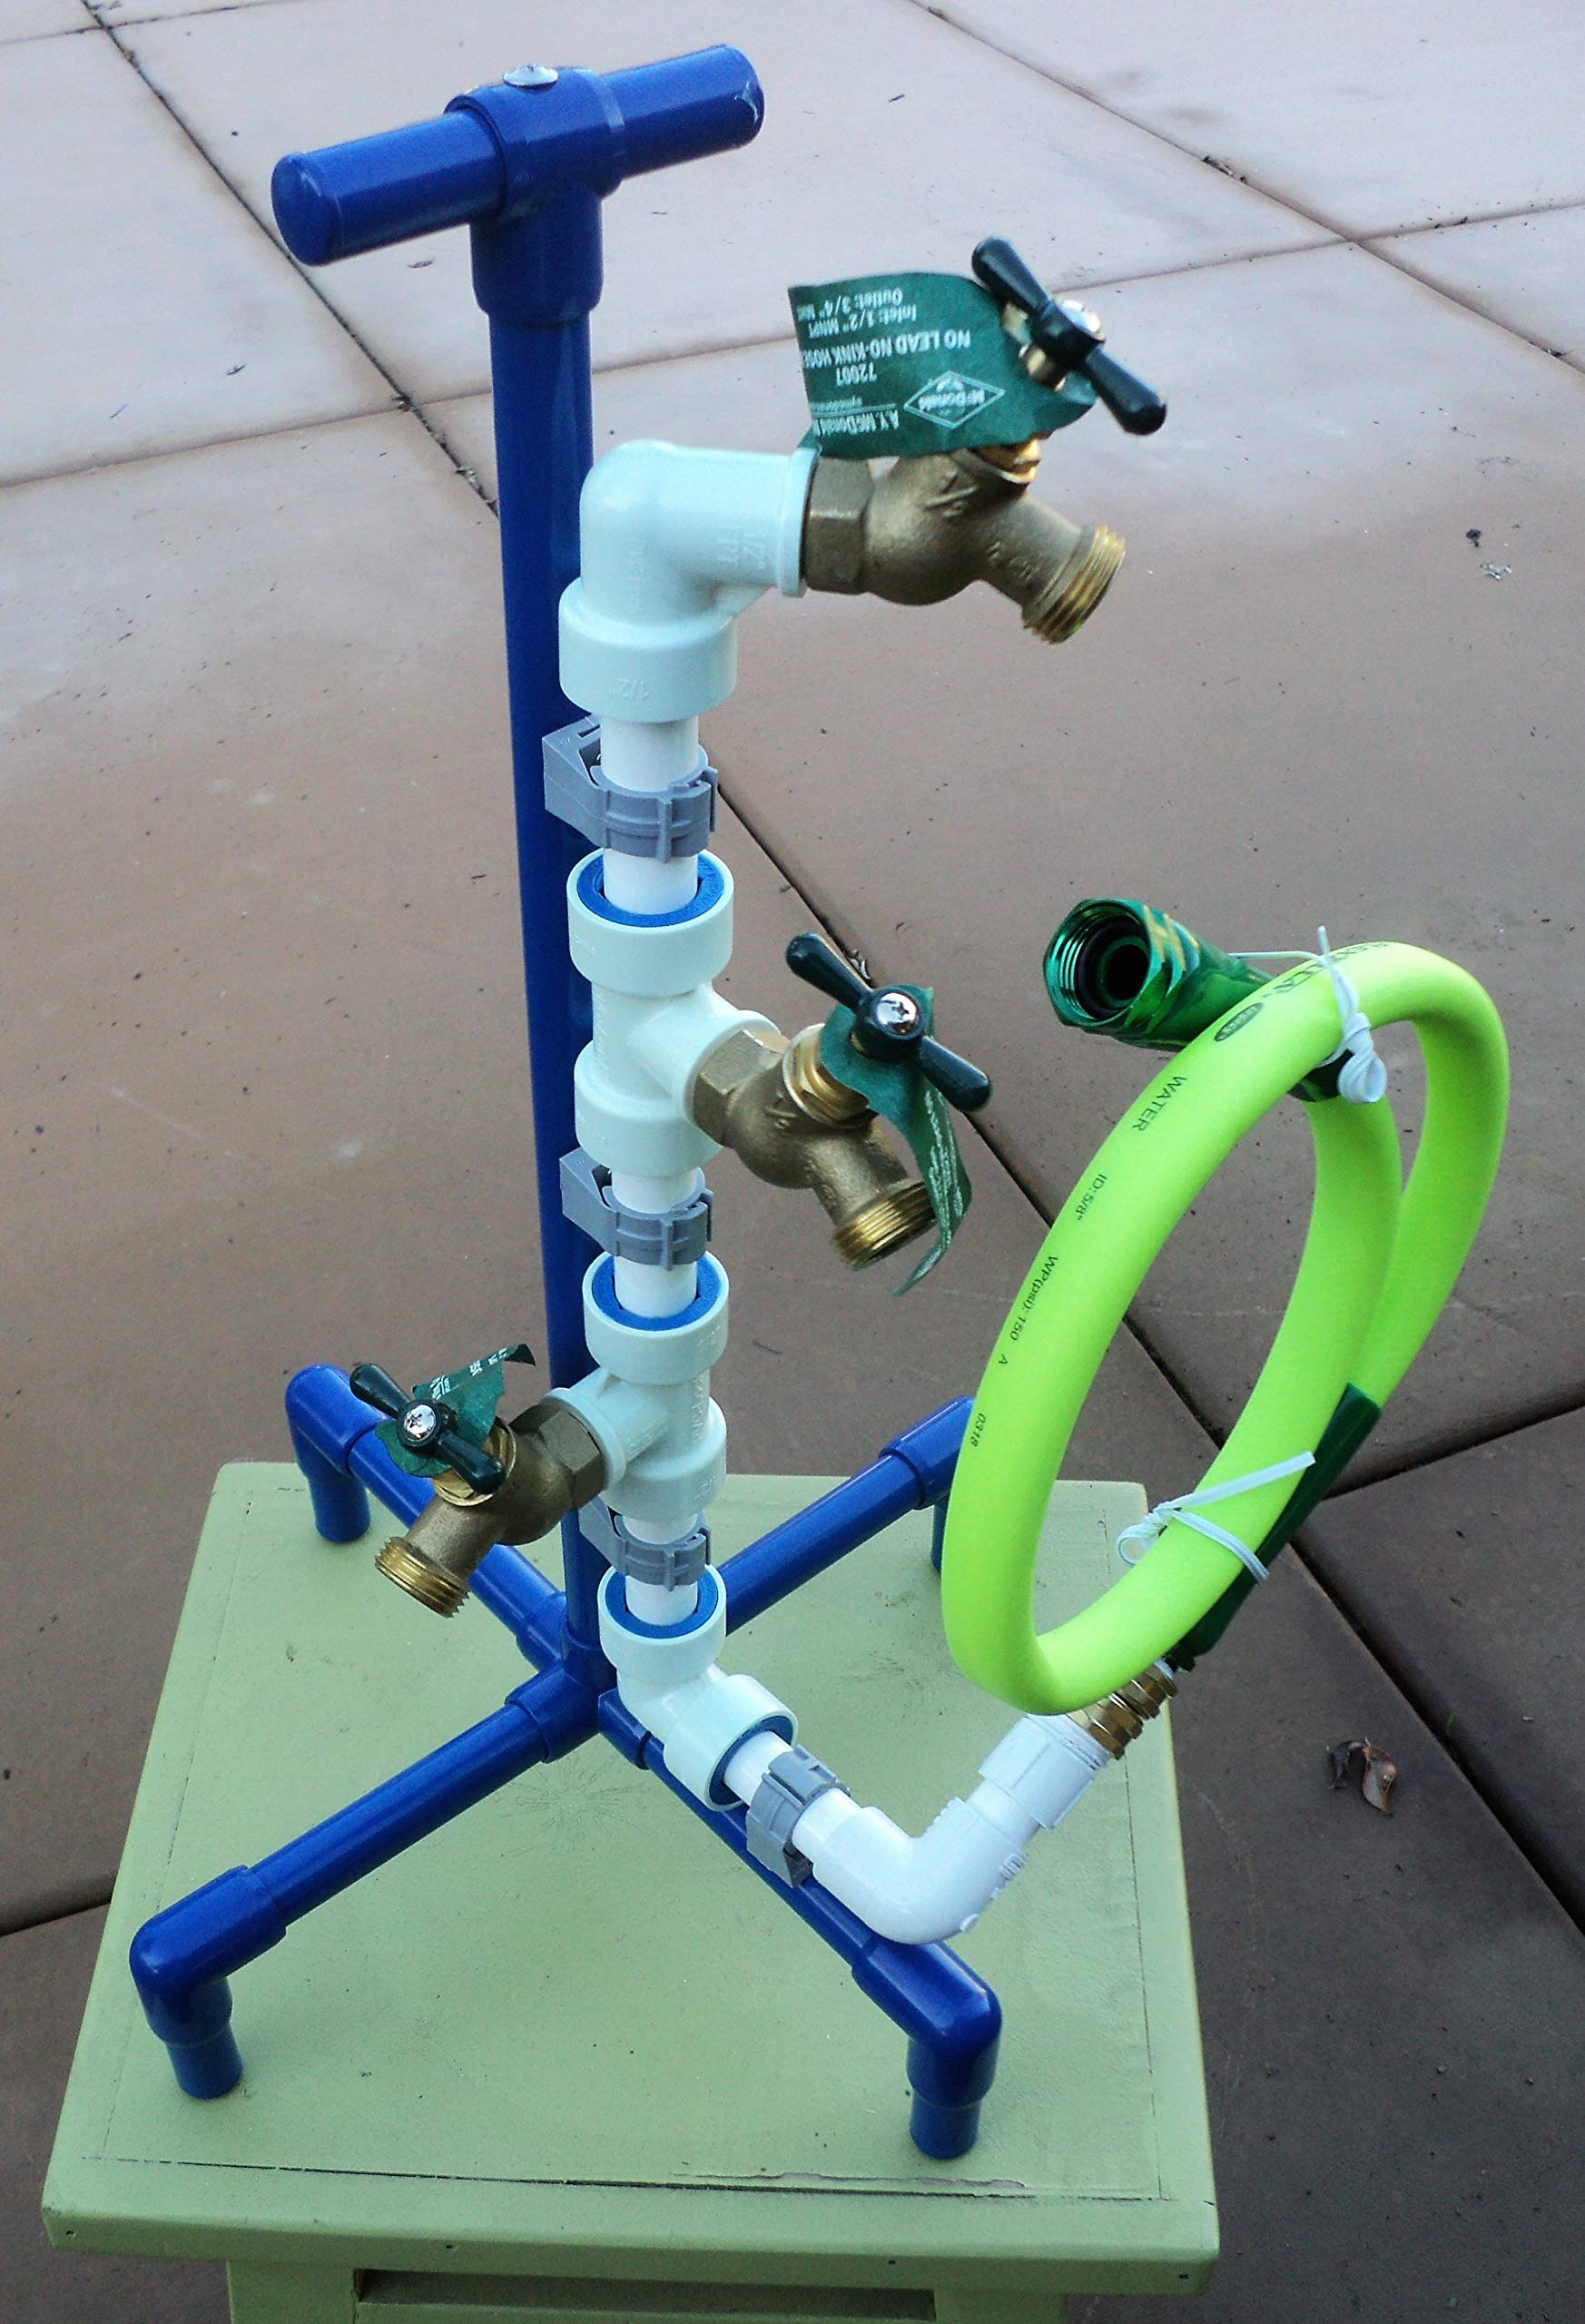 Hose Splitter-Heavy Duty 3 Spigot Garden Hose Bibb Valve Manifold-3 Port Leak Free High Flow Easy Grip Variable Flow Yard Watering Drip Irrigation-Made in USA-Stand Alone Hose Splitter by A. Michael Products - Pleasant Cruise Essentials